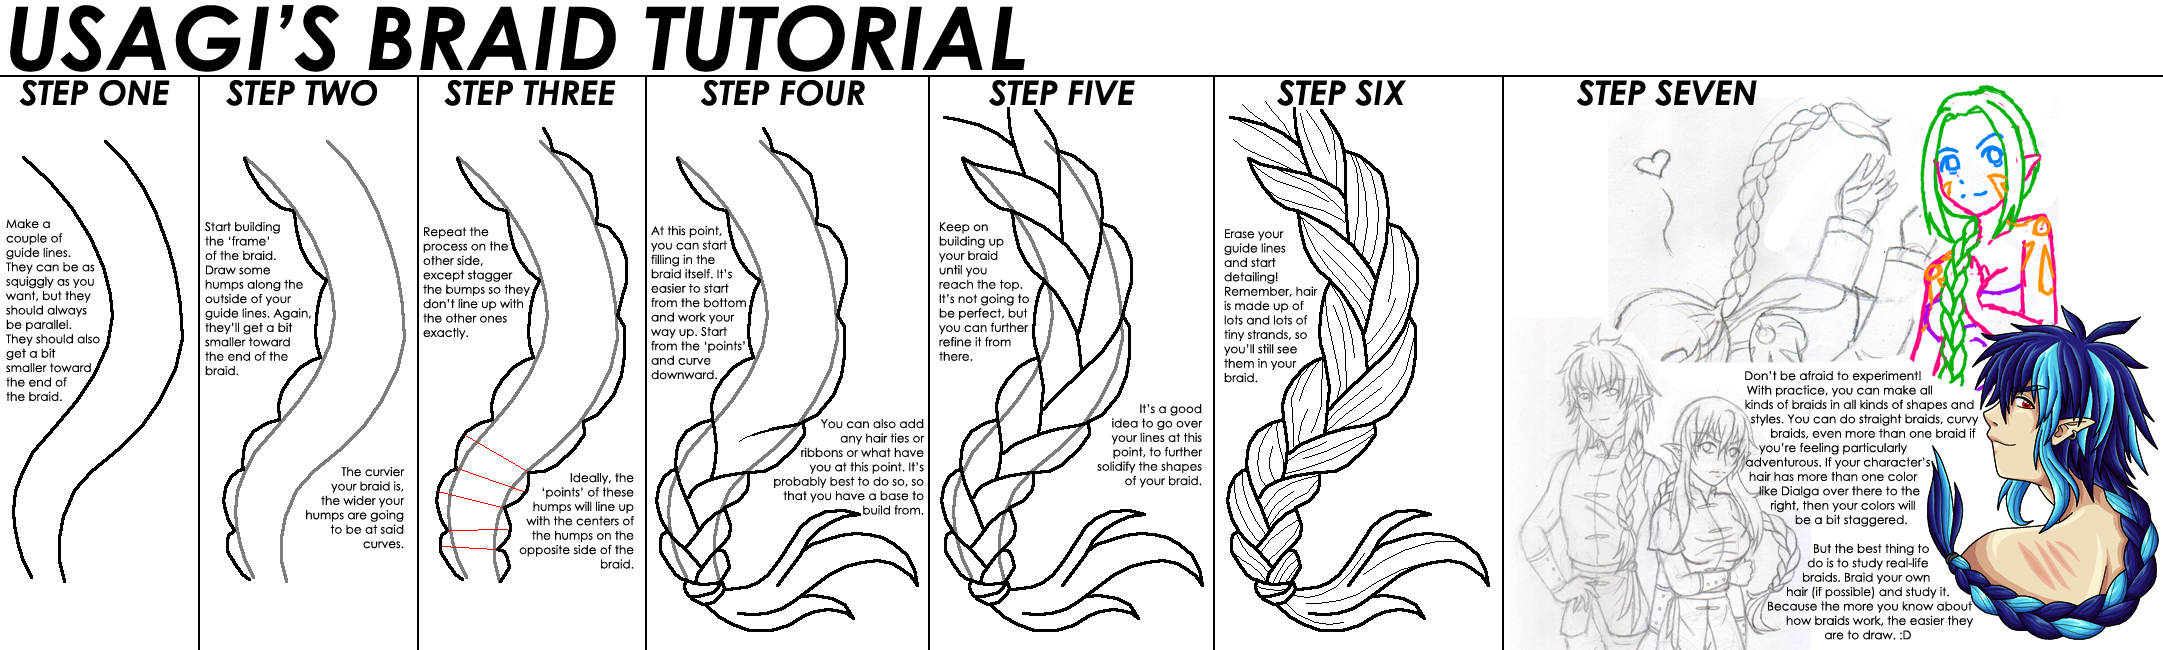 usagi__s_braid_tutorial_by_pikachan